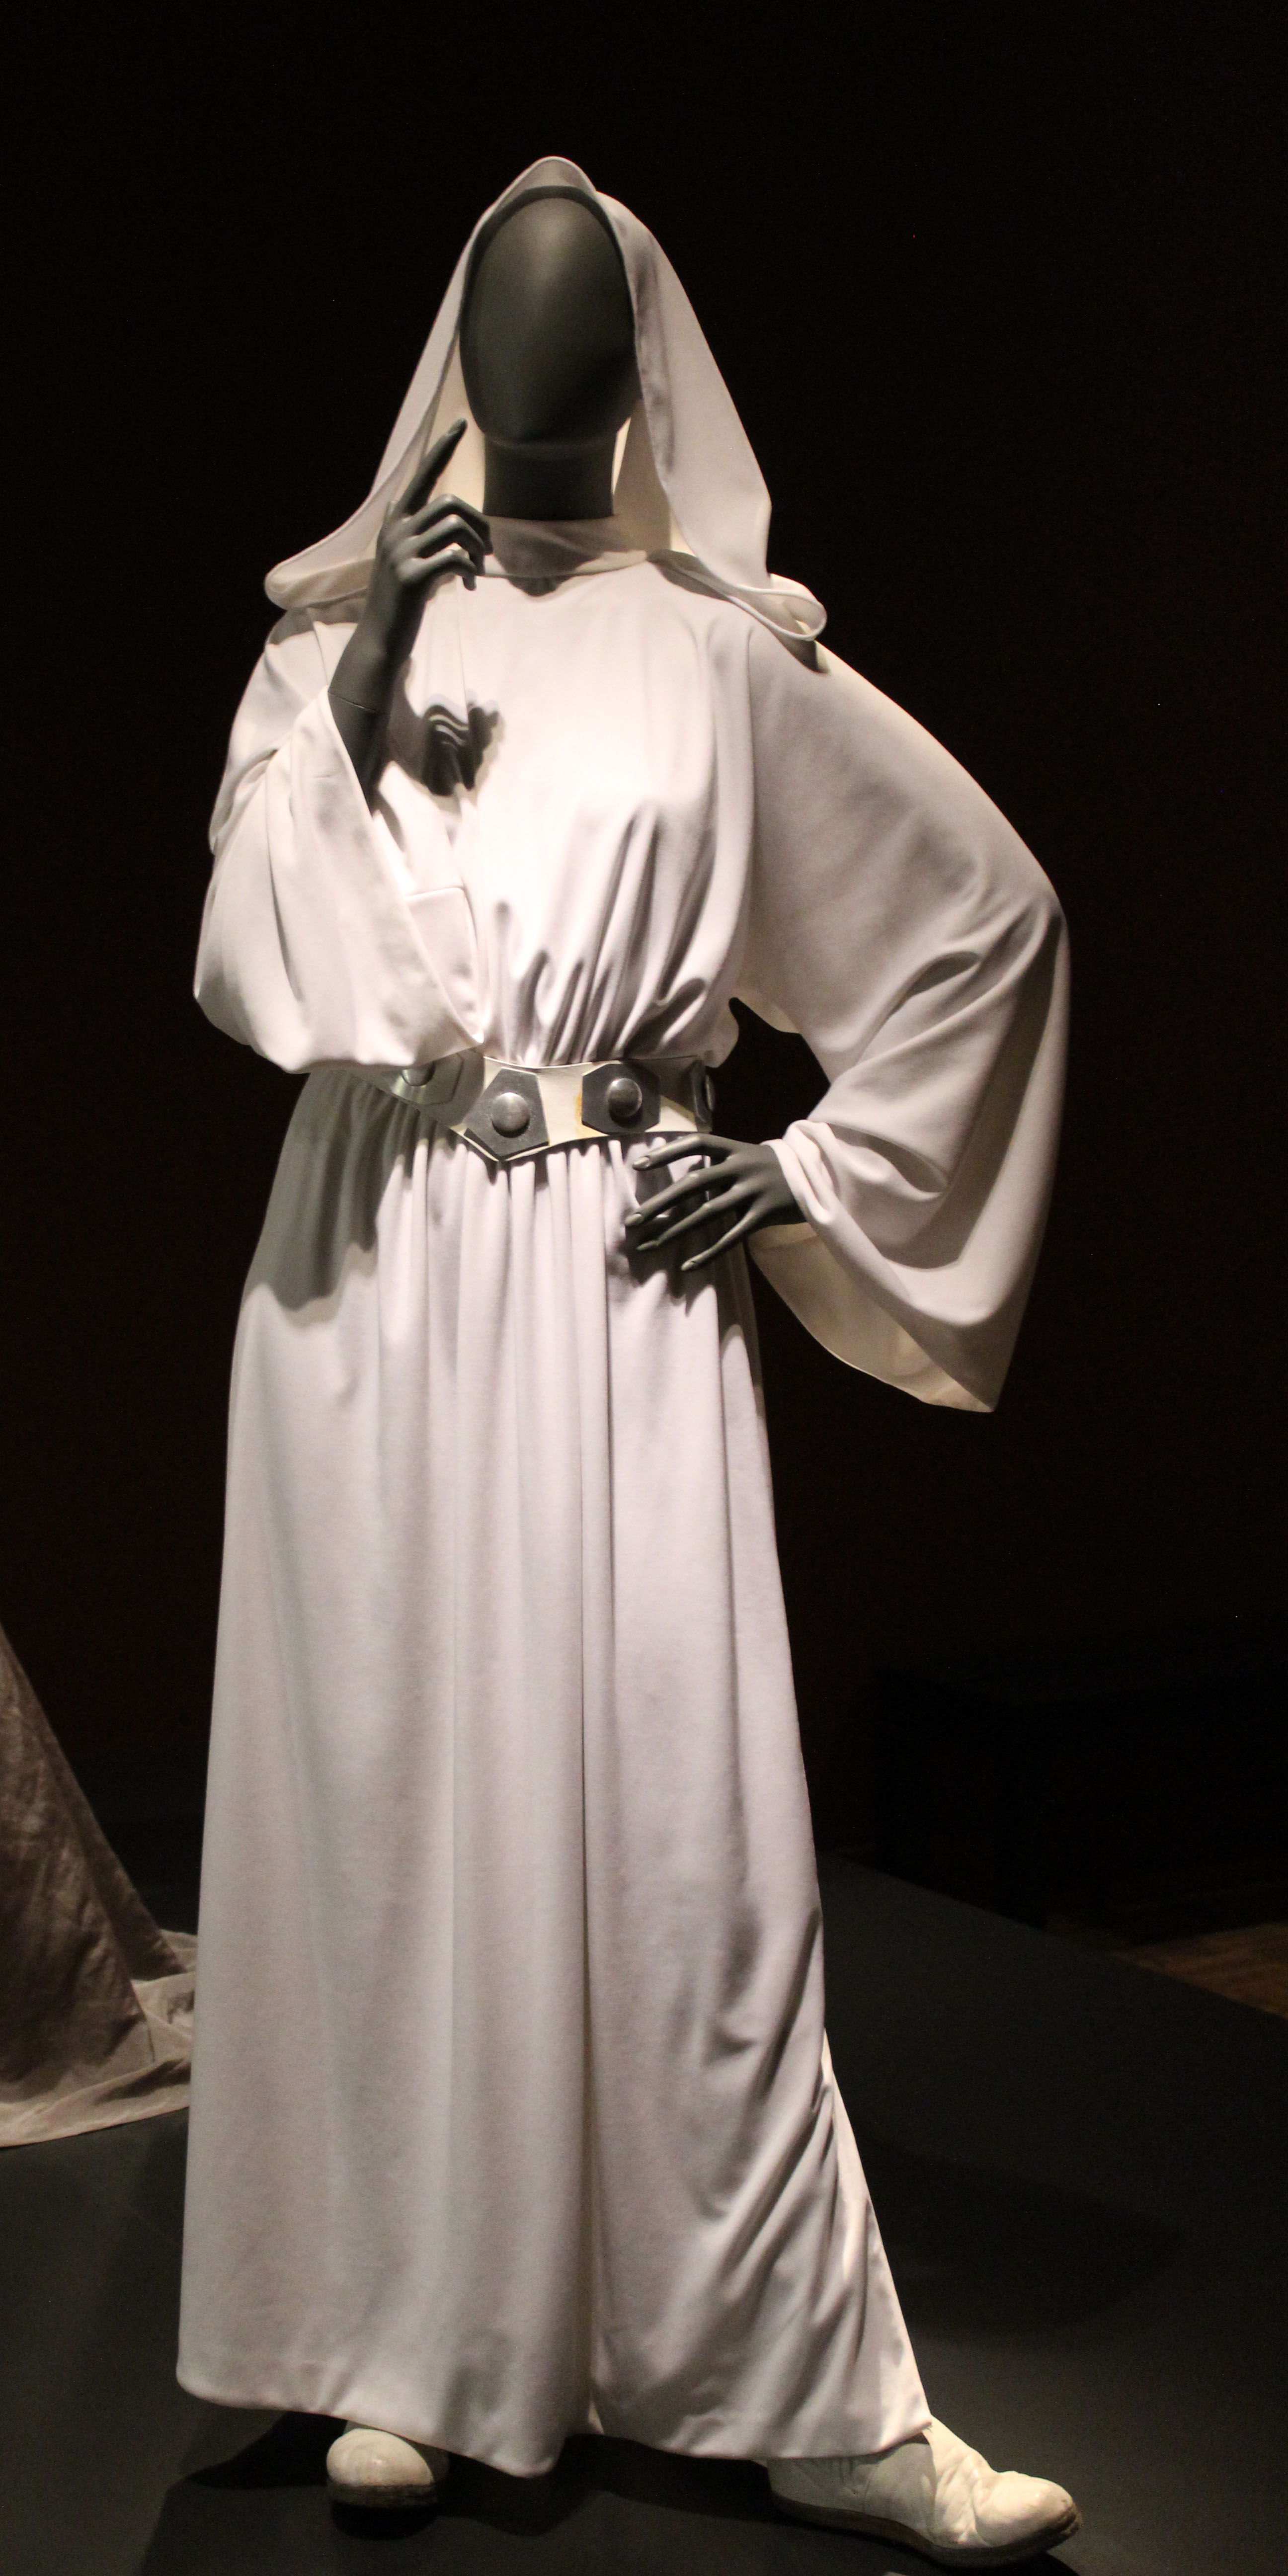 Photo of Princess Leia's white gown, worn in 1980's Episode V: The Empire Strikes Back